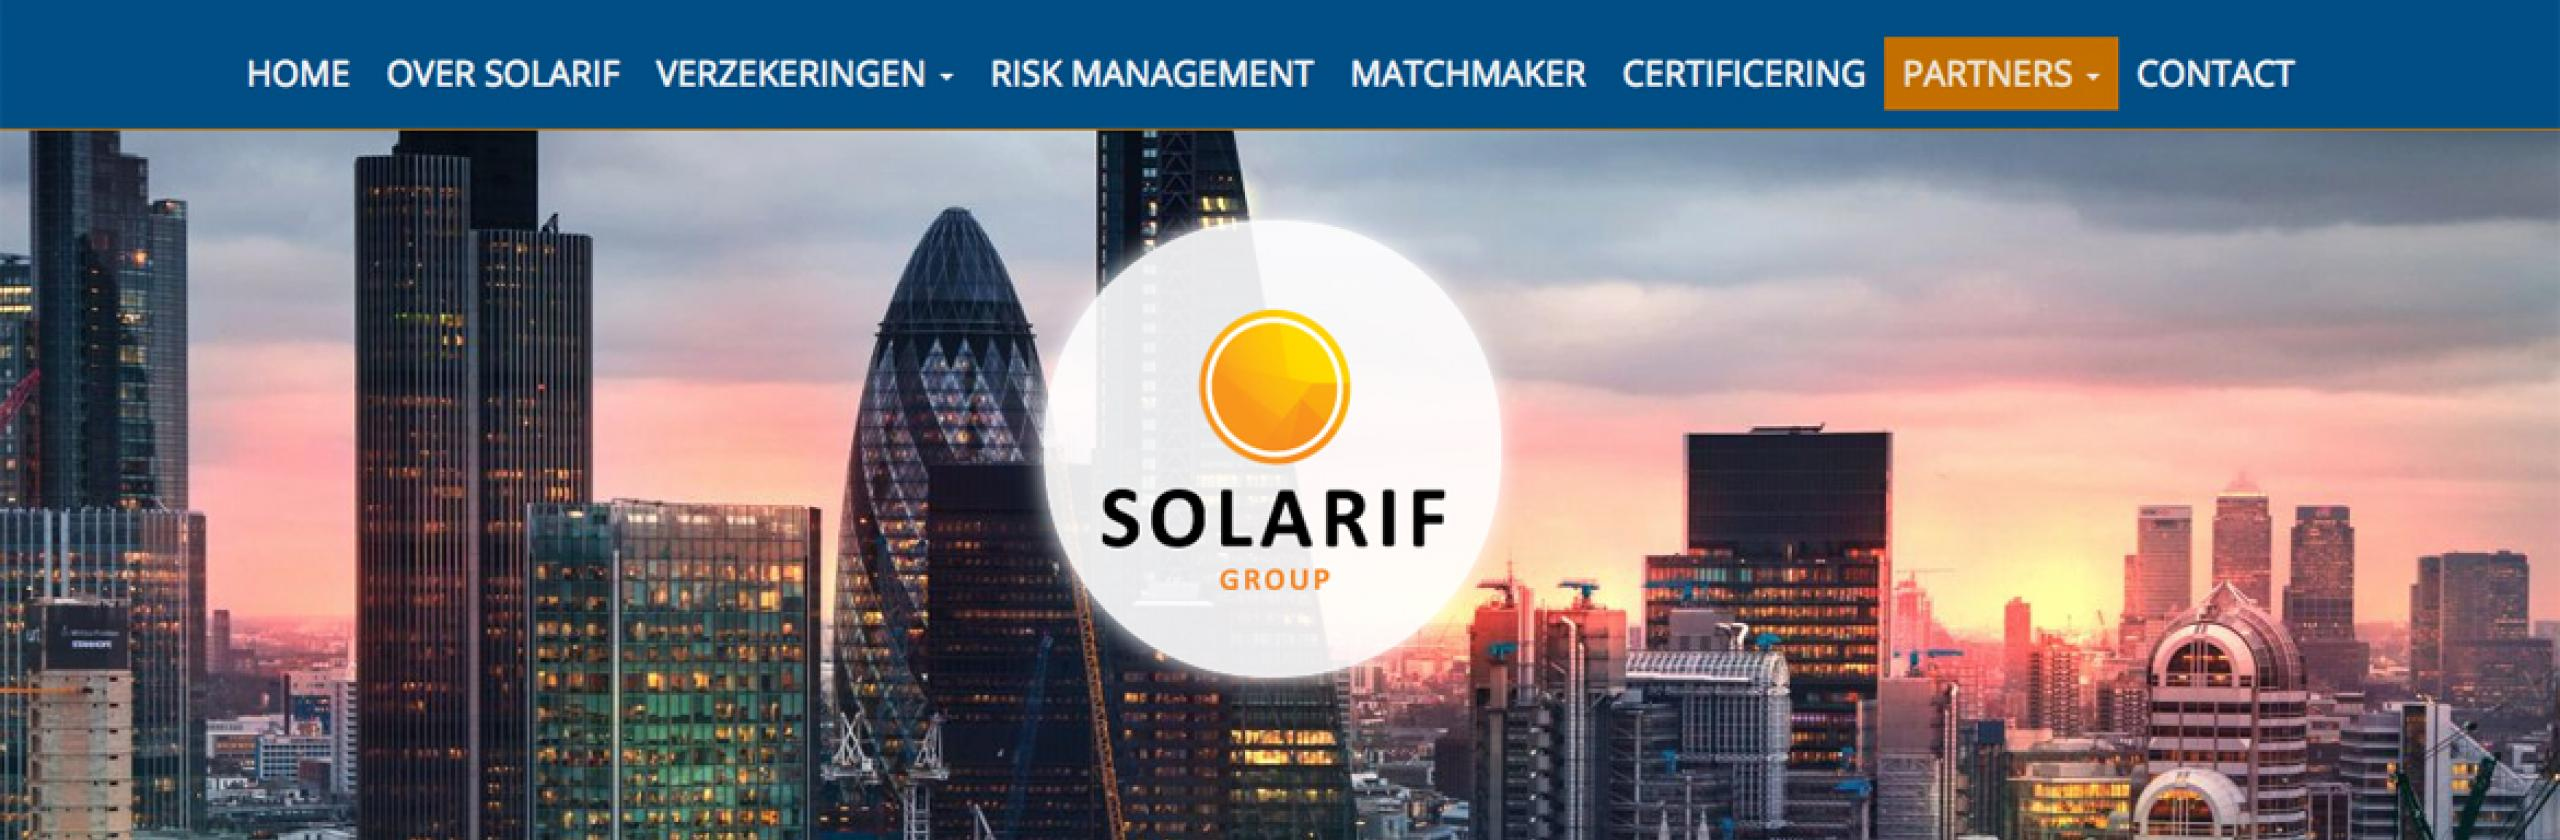 Header Solarif Group